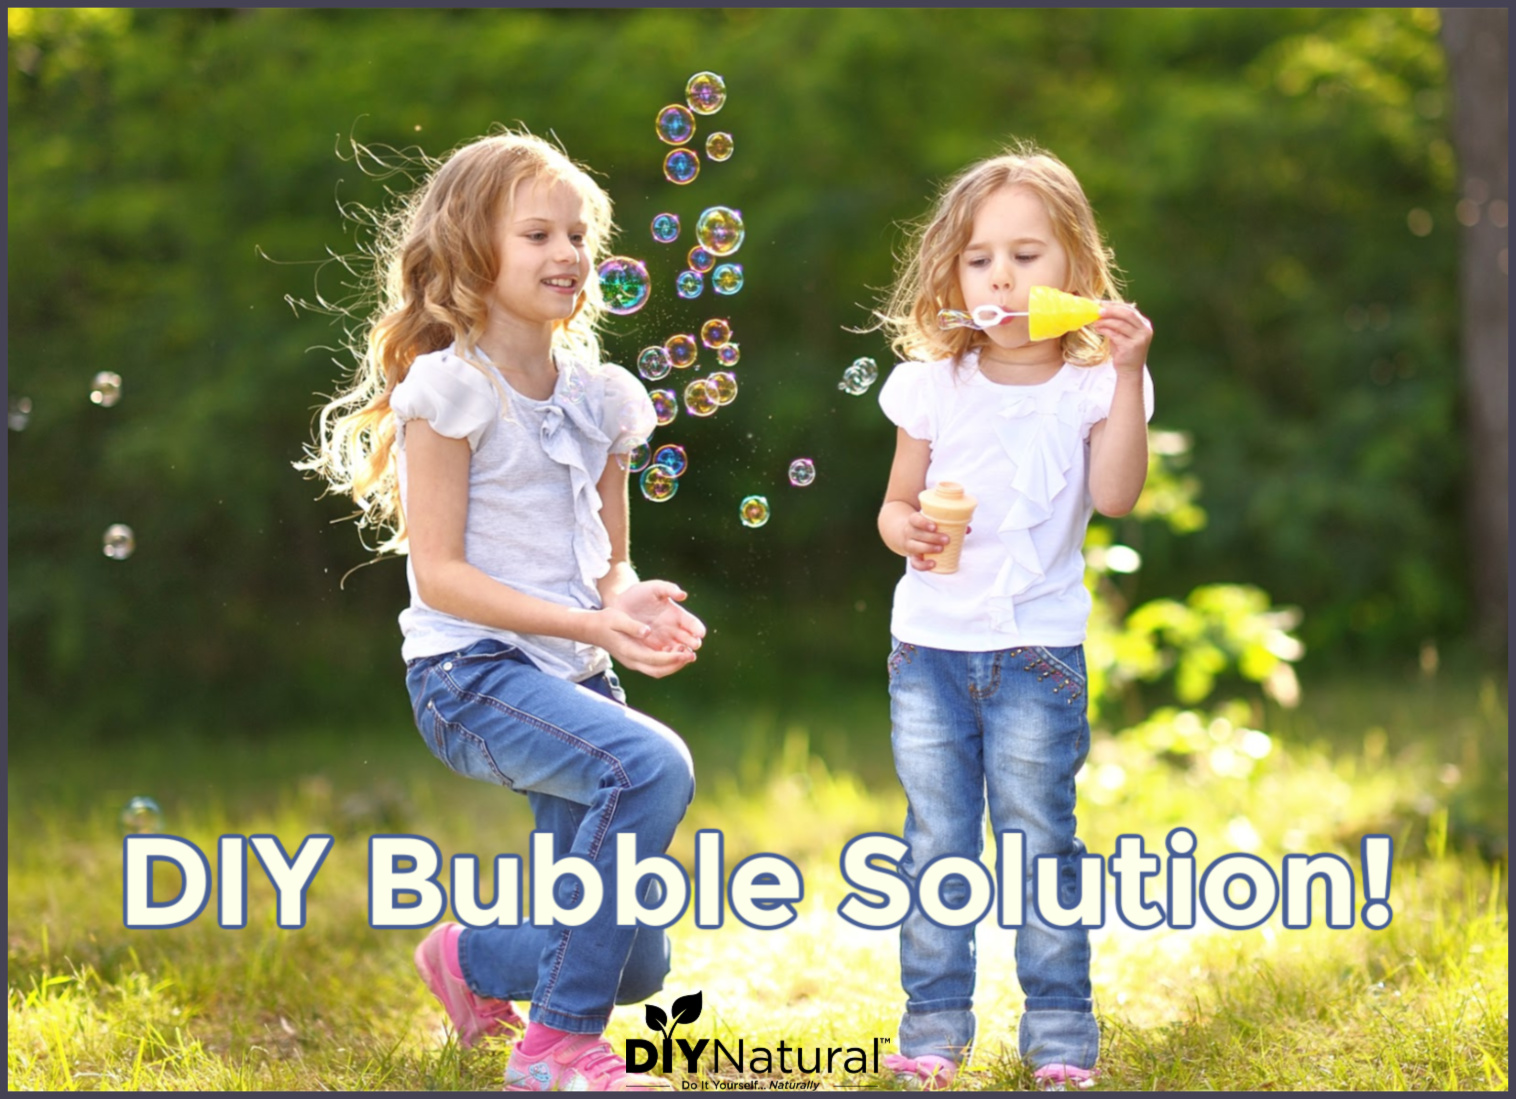 Making Homemade Bubble Solution For The Kids!